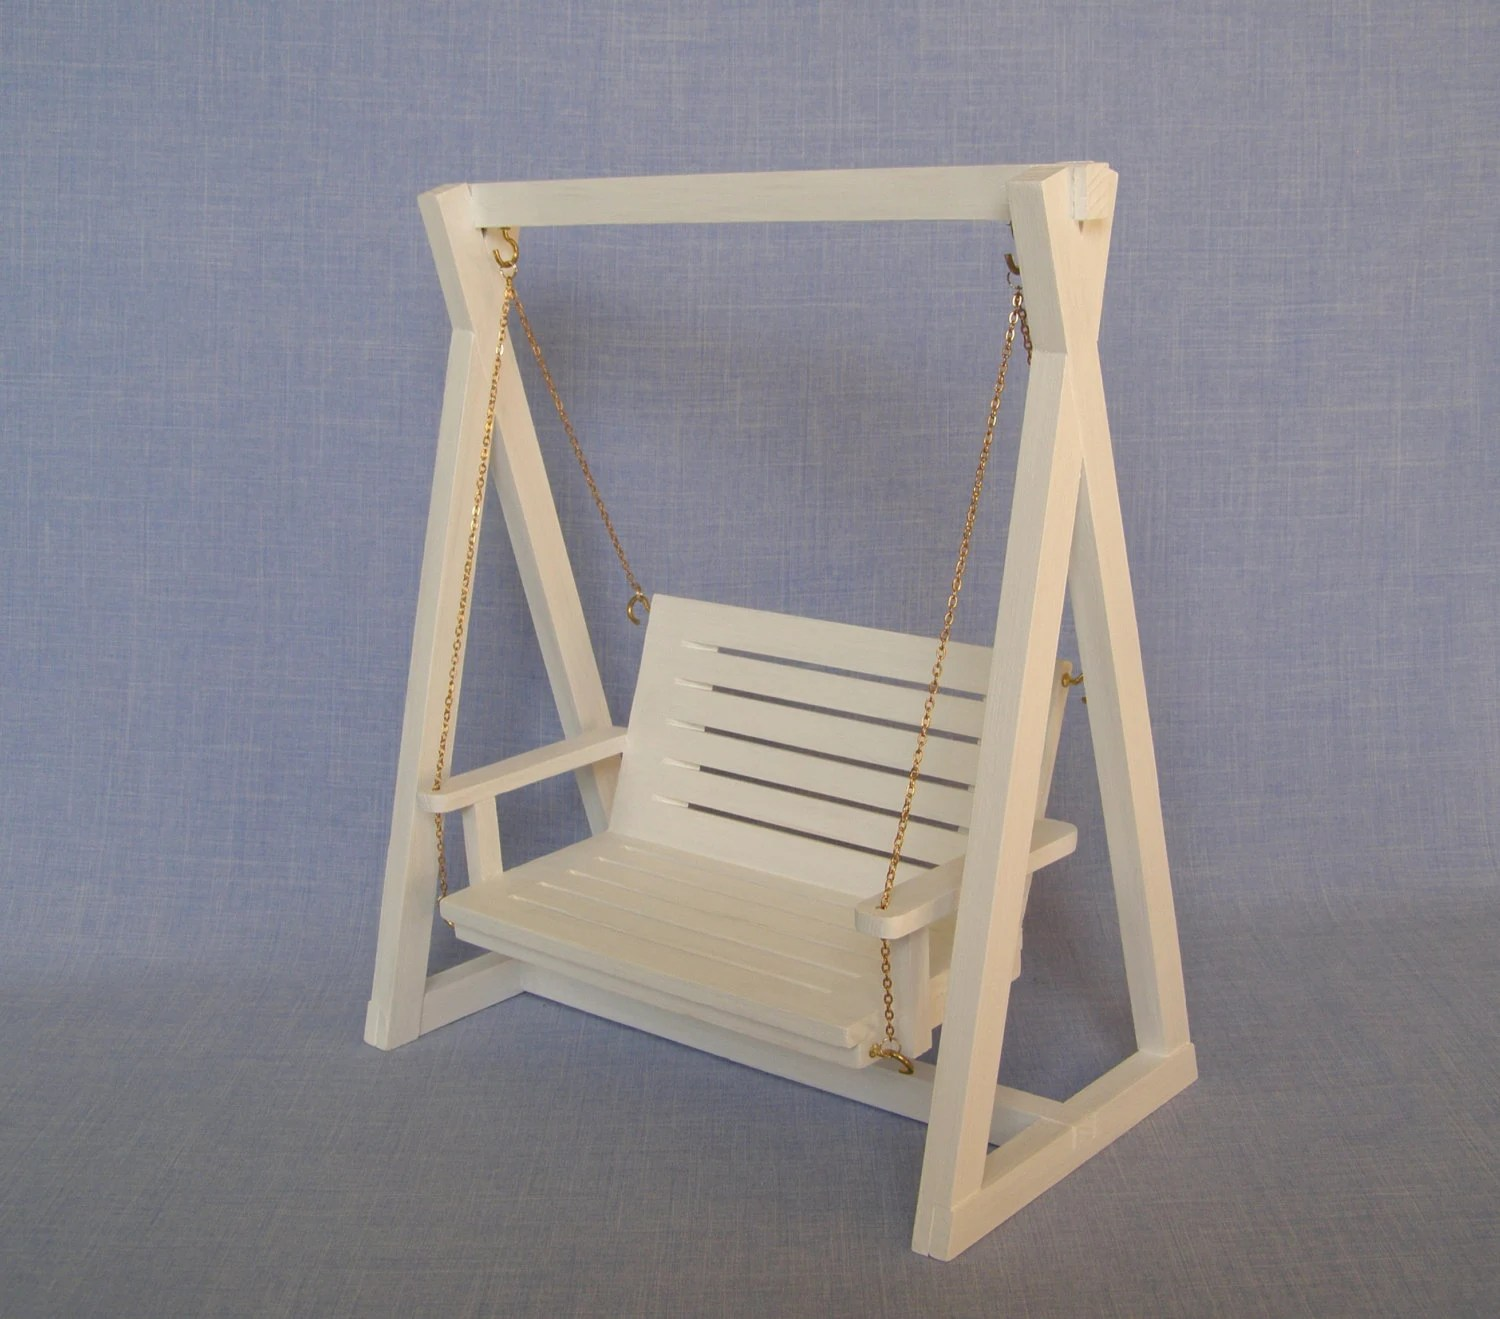 porch lounge chair deck chairs lowes white swing for 12 inch doll / barbie size 1:6 scale